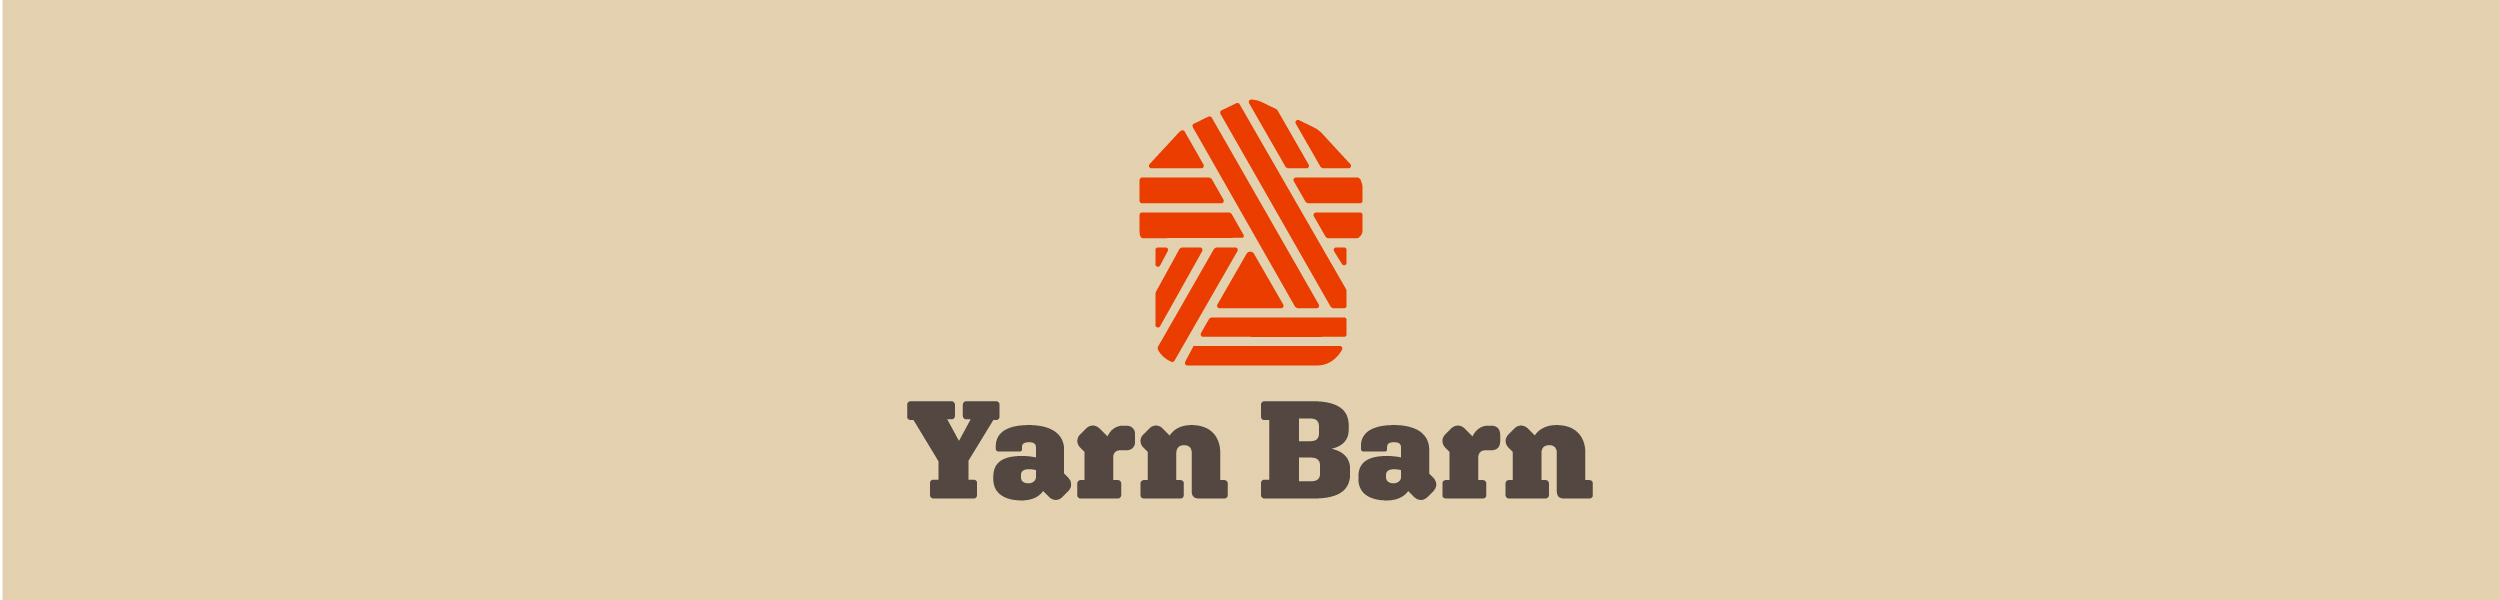 Yarn Barn Final Logo.jpg